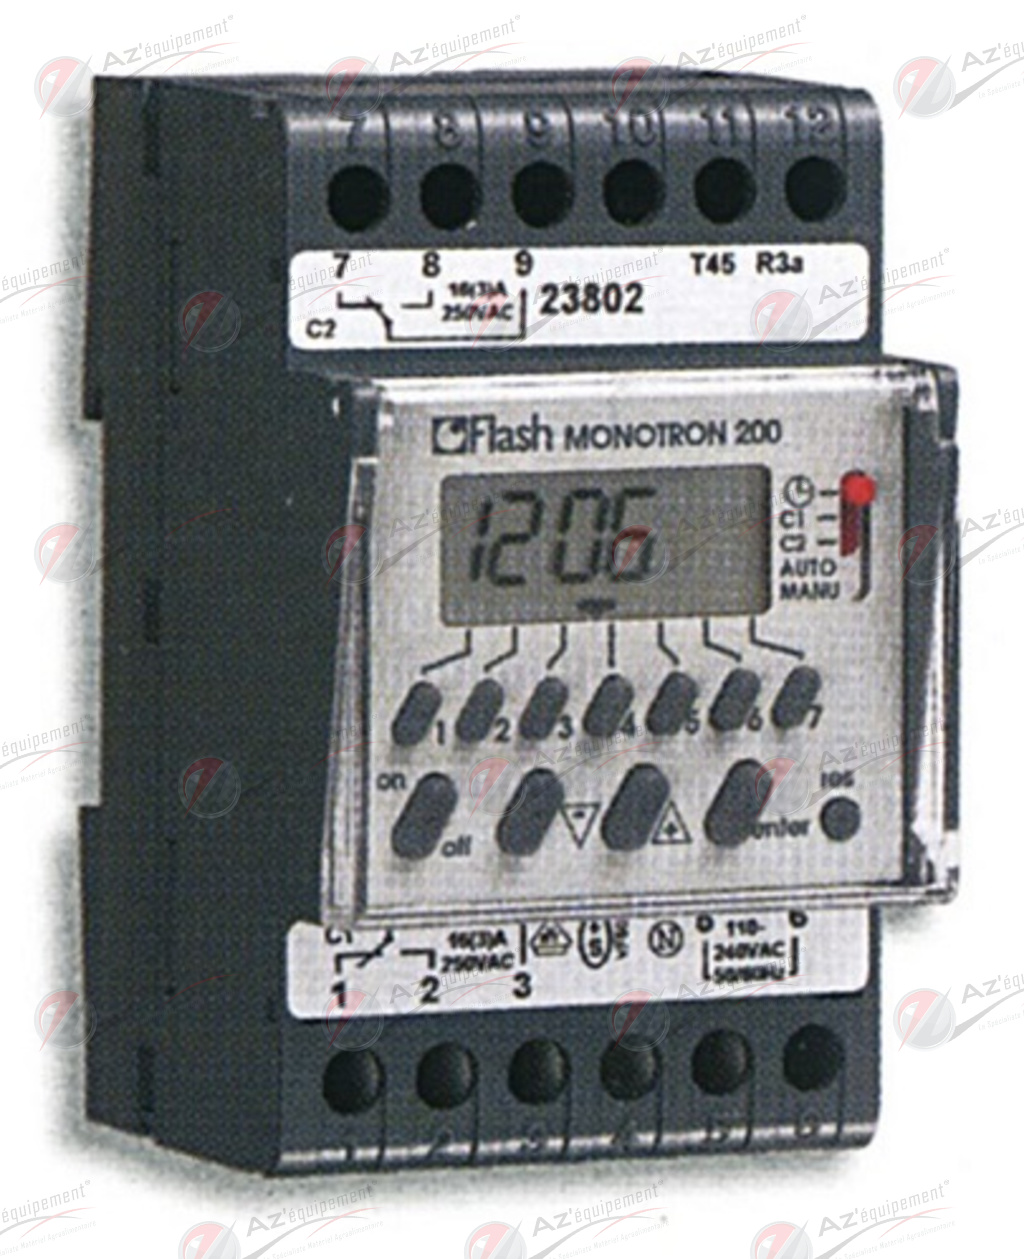 Horloge Flash Monotron 200 Flash Ho23802 Pieces